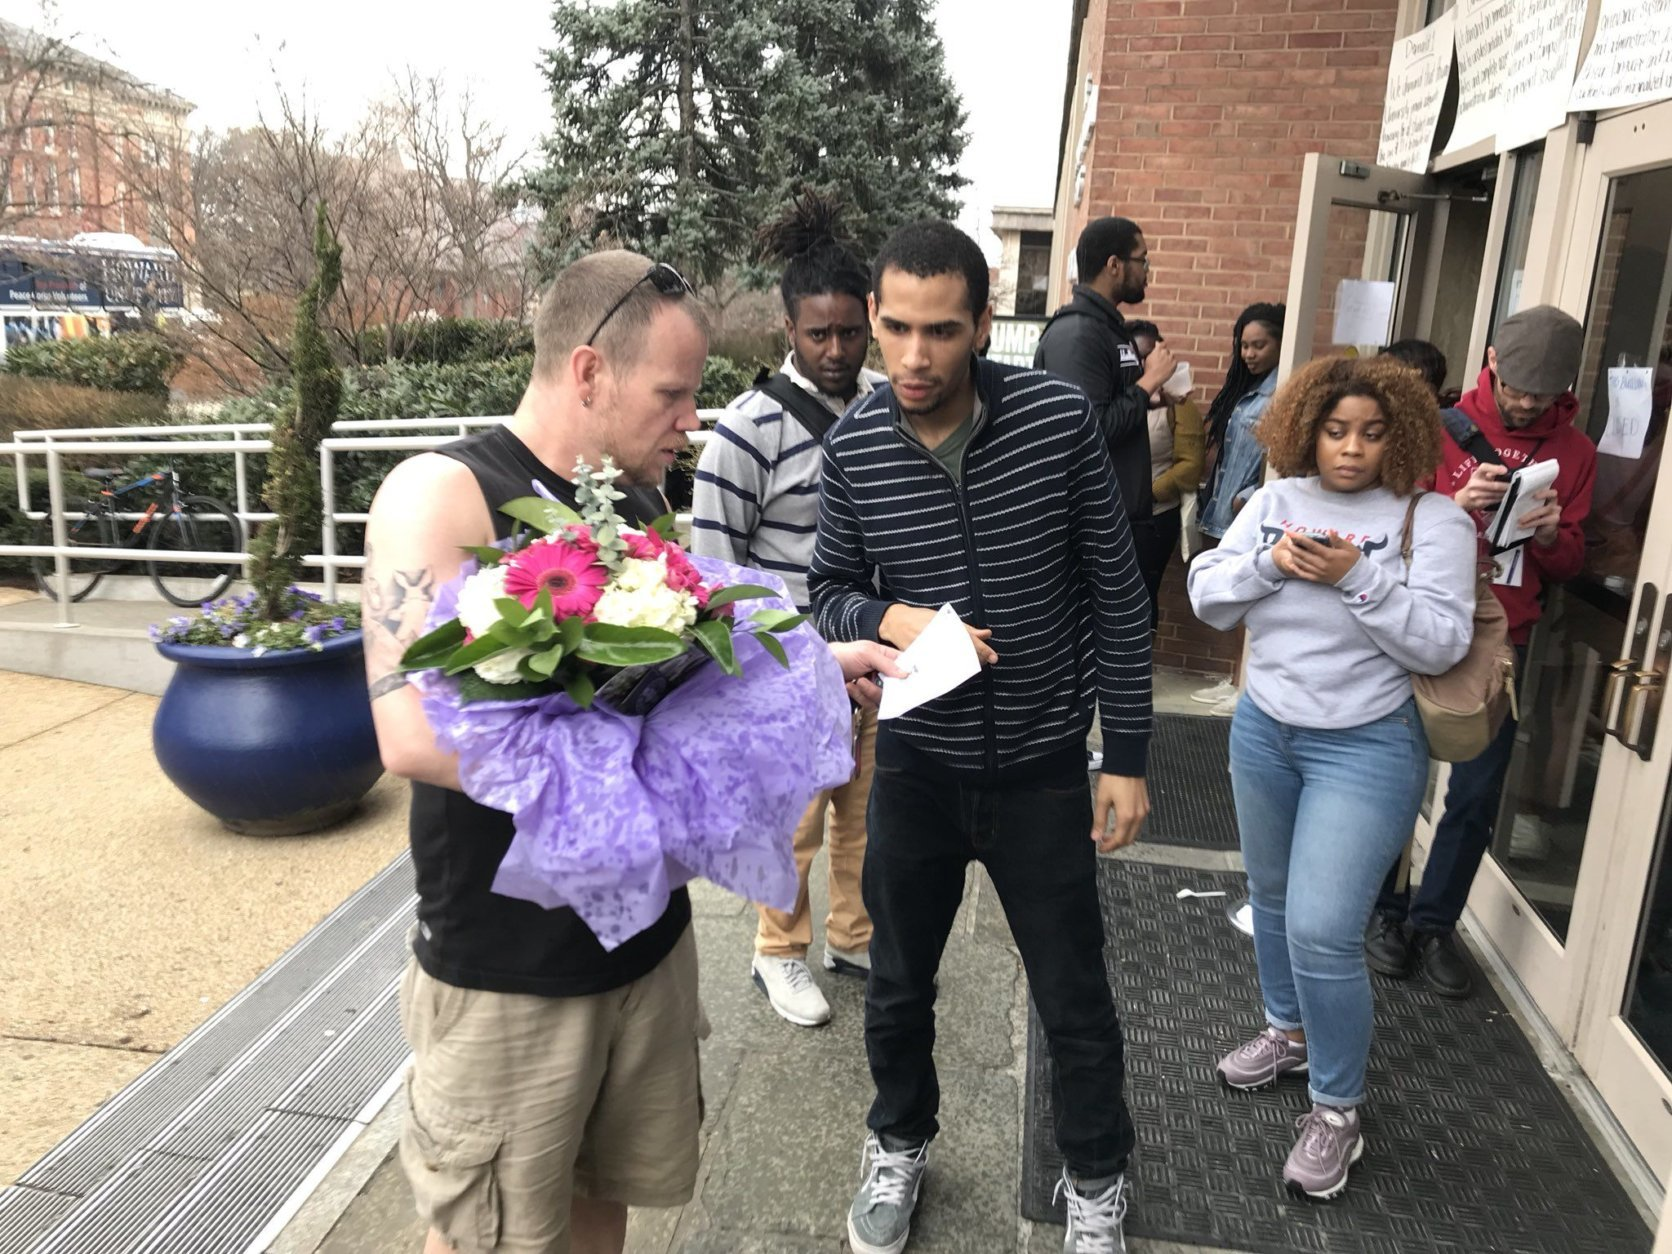 Groceries, pizza and even flowers have been delivered to the Howard University administration building. In addition, alumni have been stopping by to talk to protesters and offer their encouragement. (WTOP/Michelle Basch)